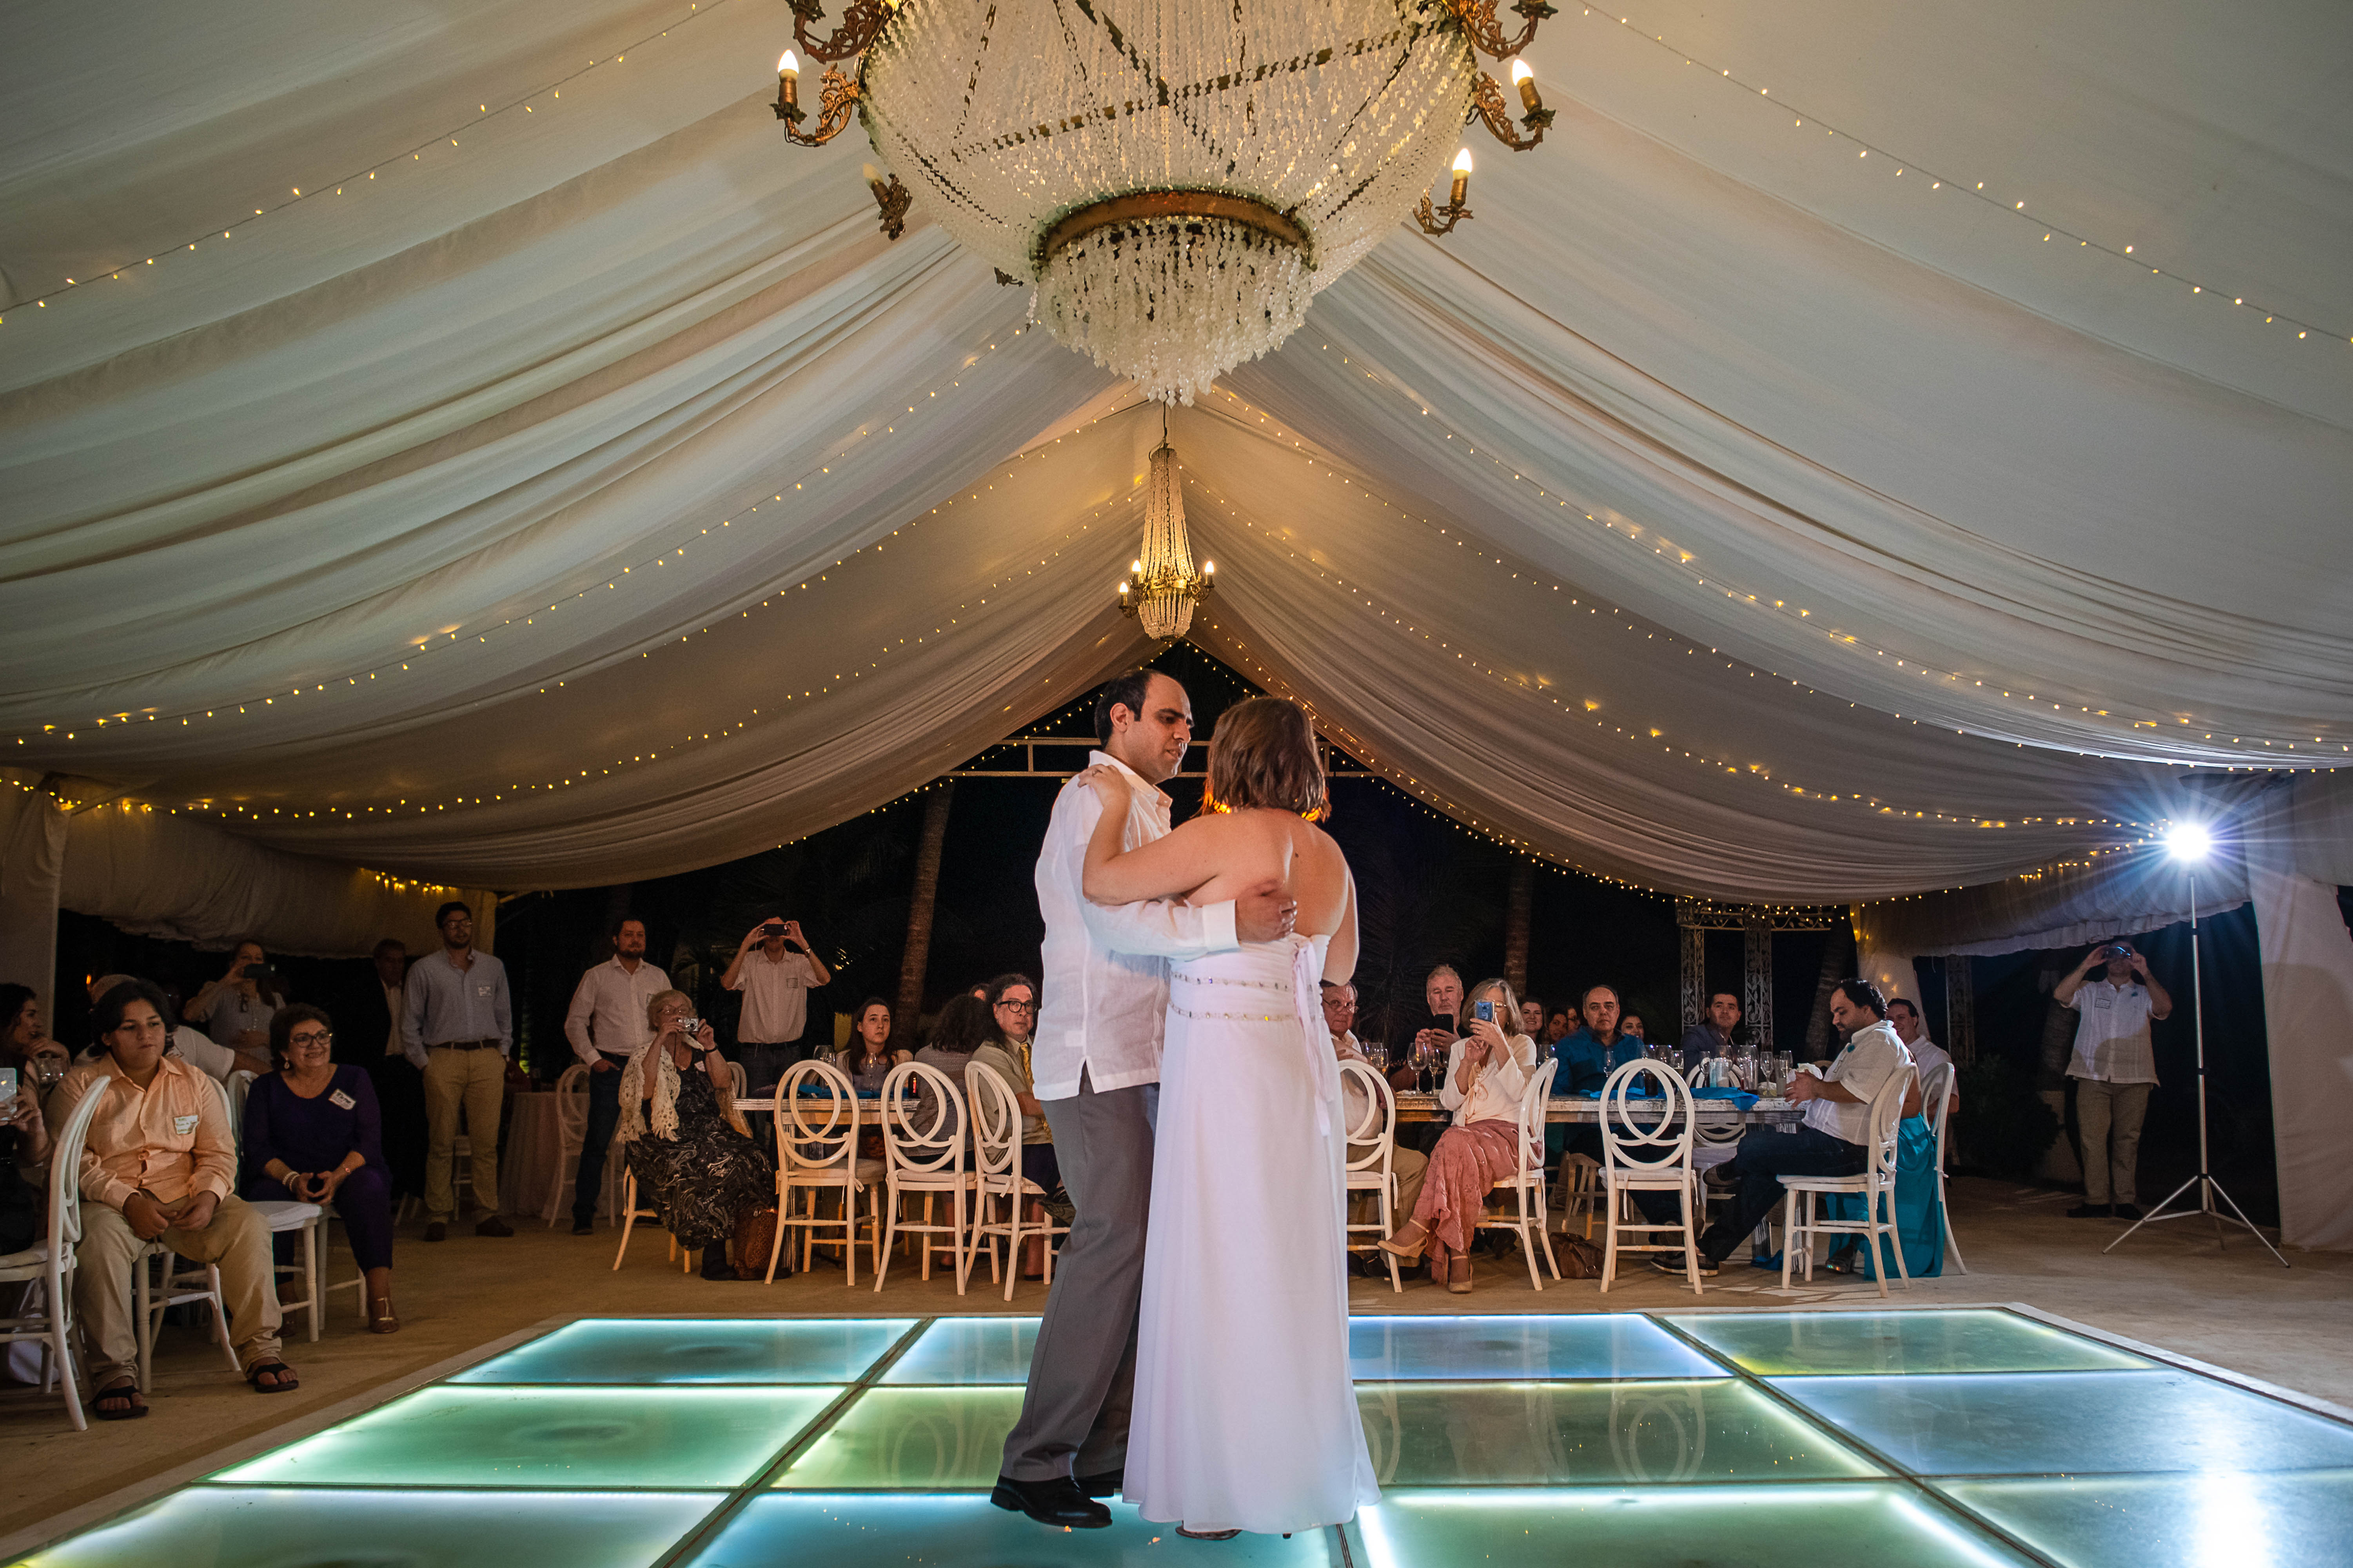 the bride and groom at the first dance as a husband and wife dancing at the dance flore with all the people looking them at Ocean Events Cancun